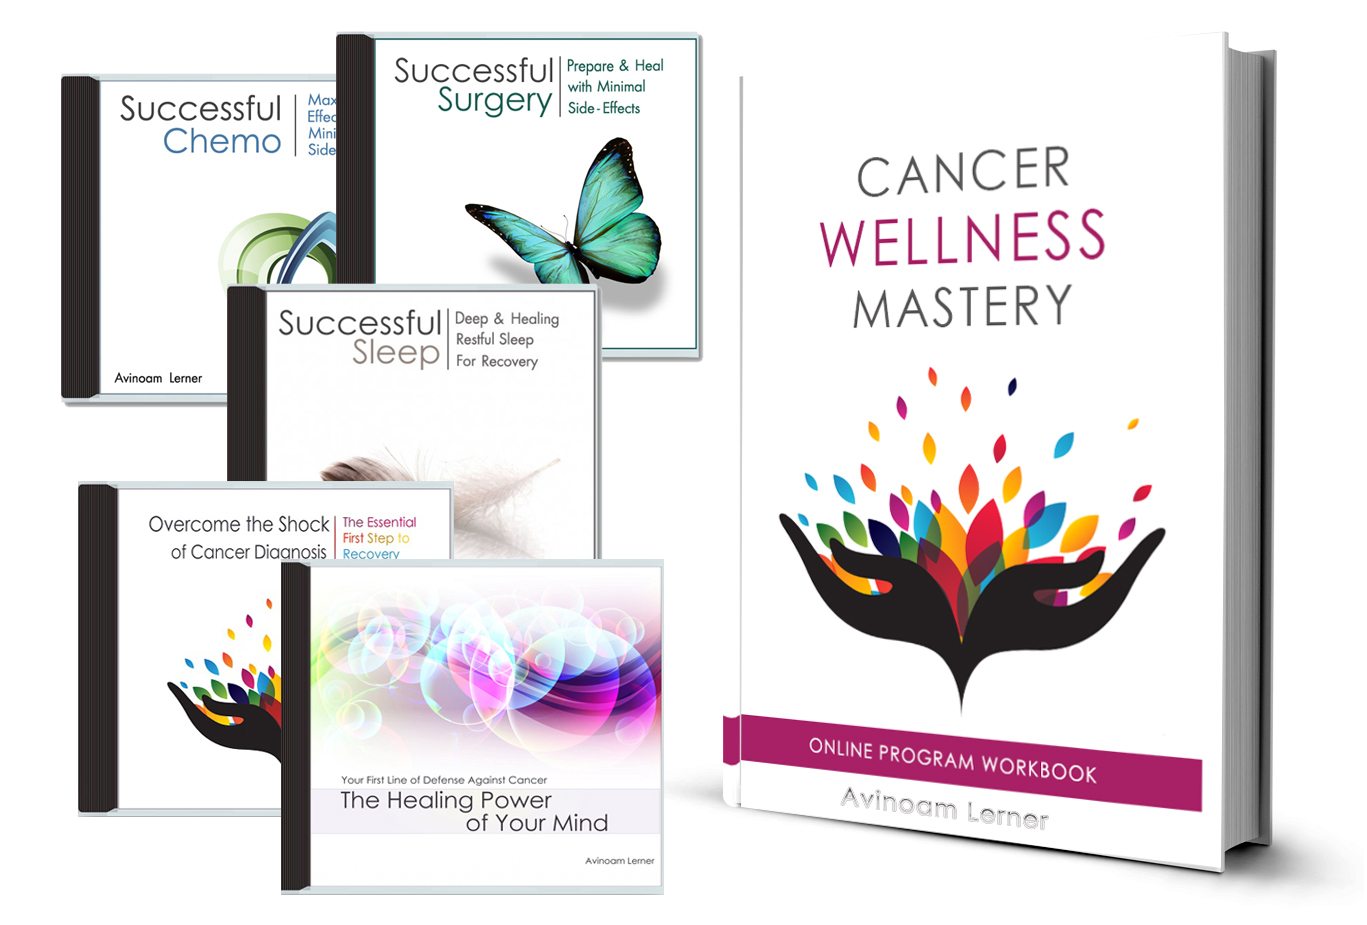 cancer wellness mastery workbook